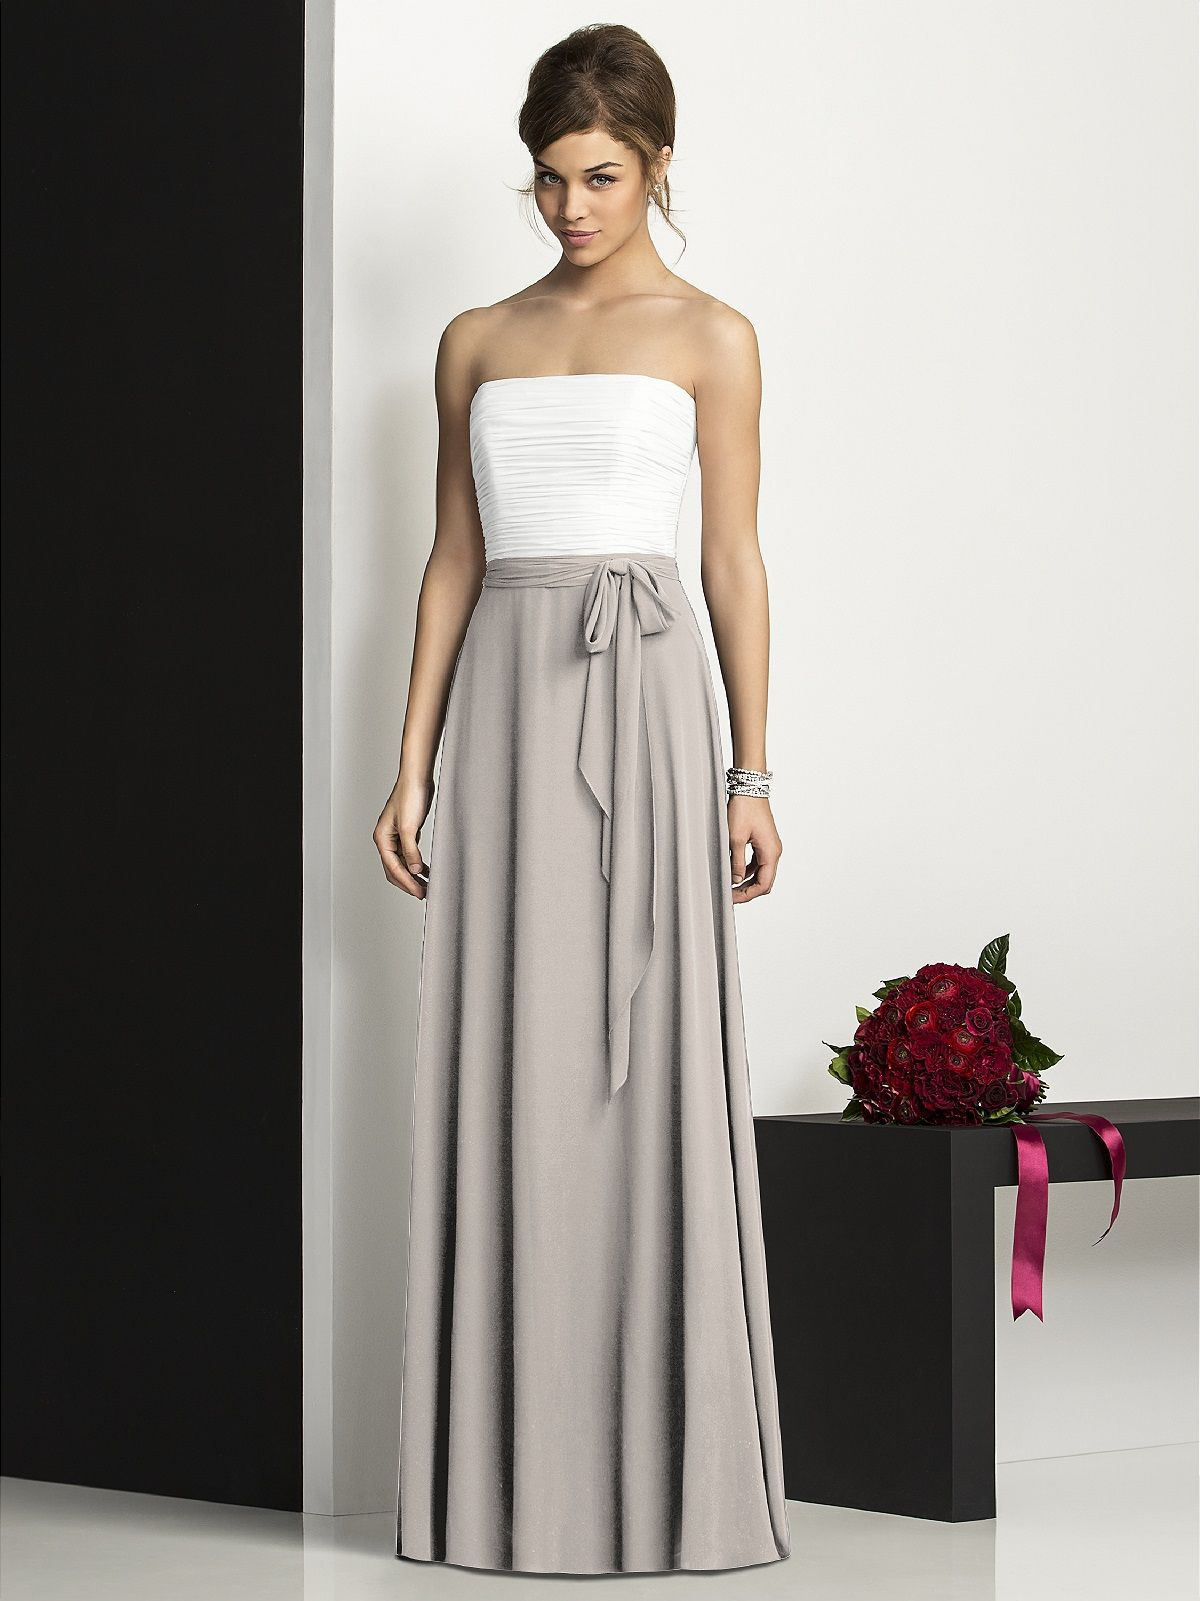 Dessy collection bridesmaids style ssydresses